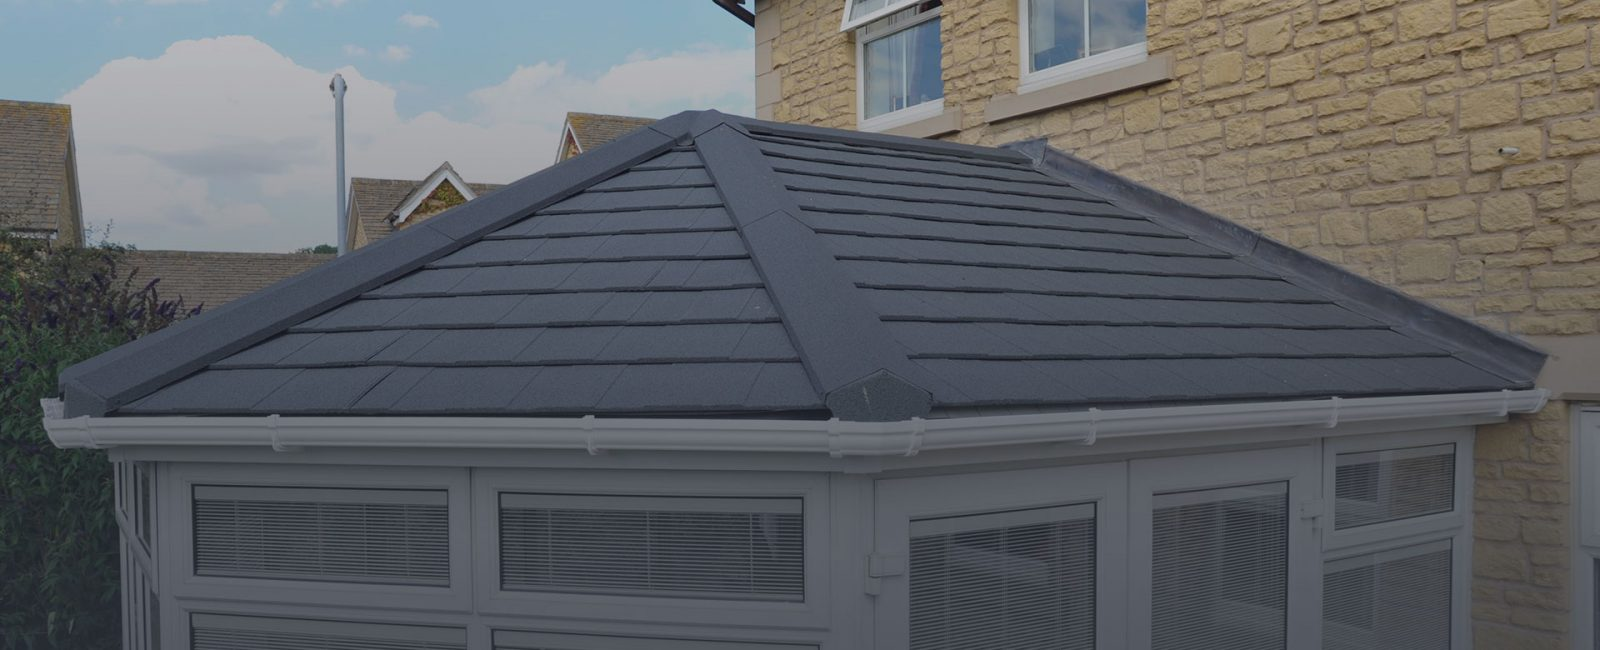 Equinox Tiled Roof in the West Midlands